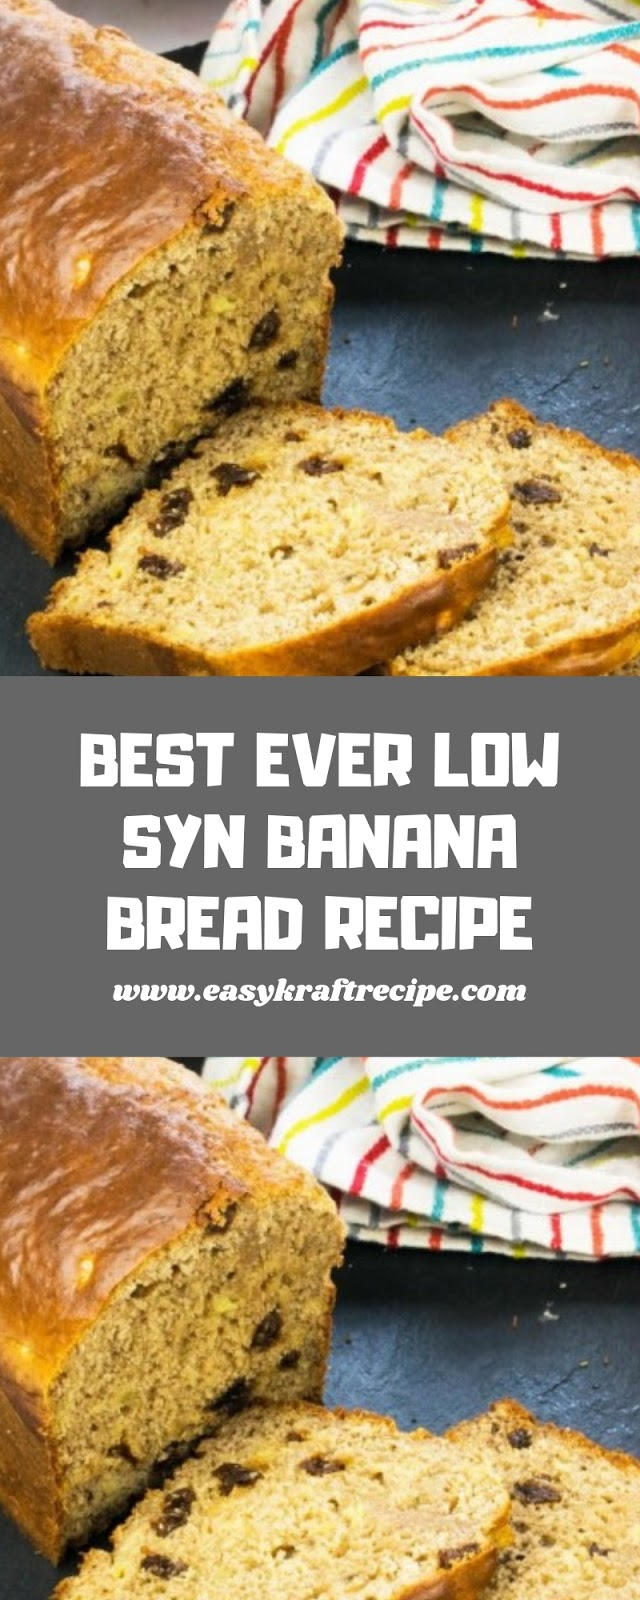 BEST EVER LOW SYN BANANA BREAD